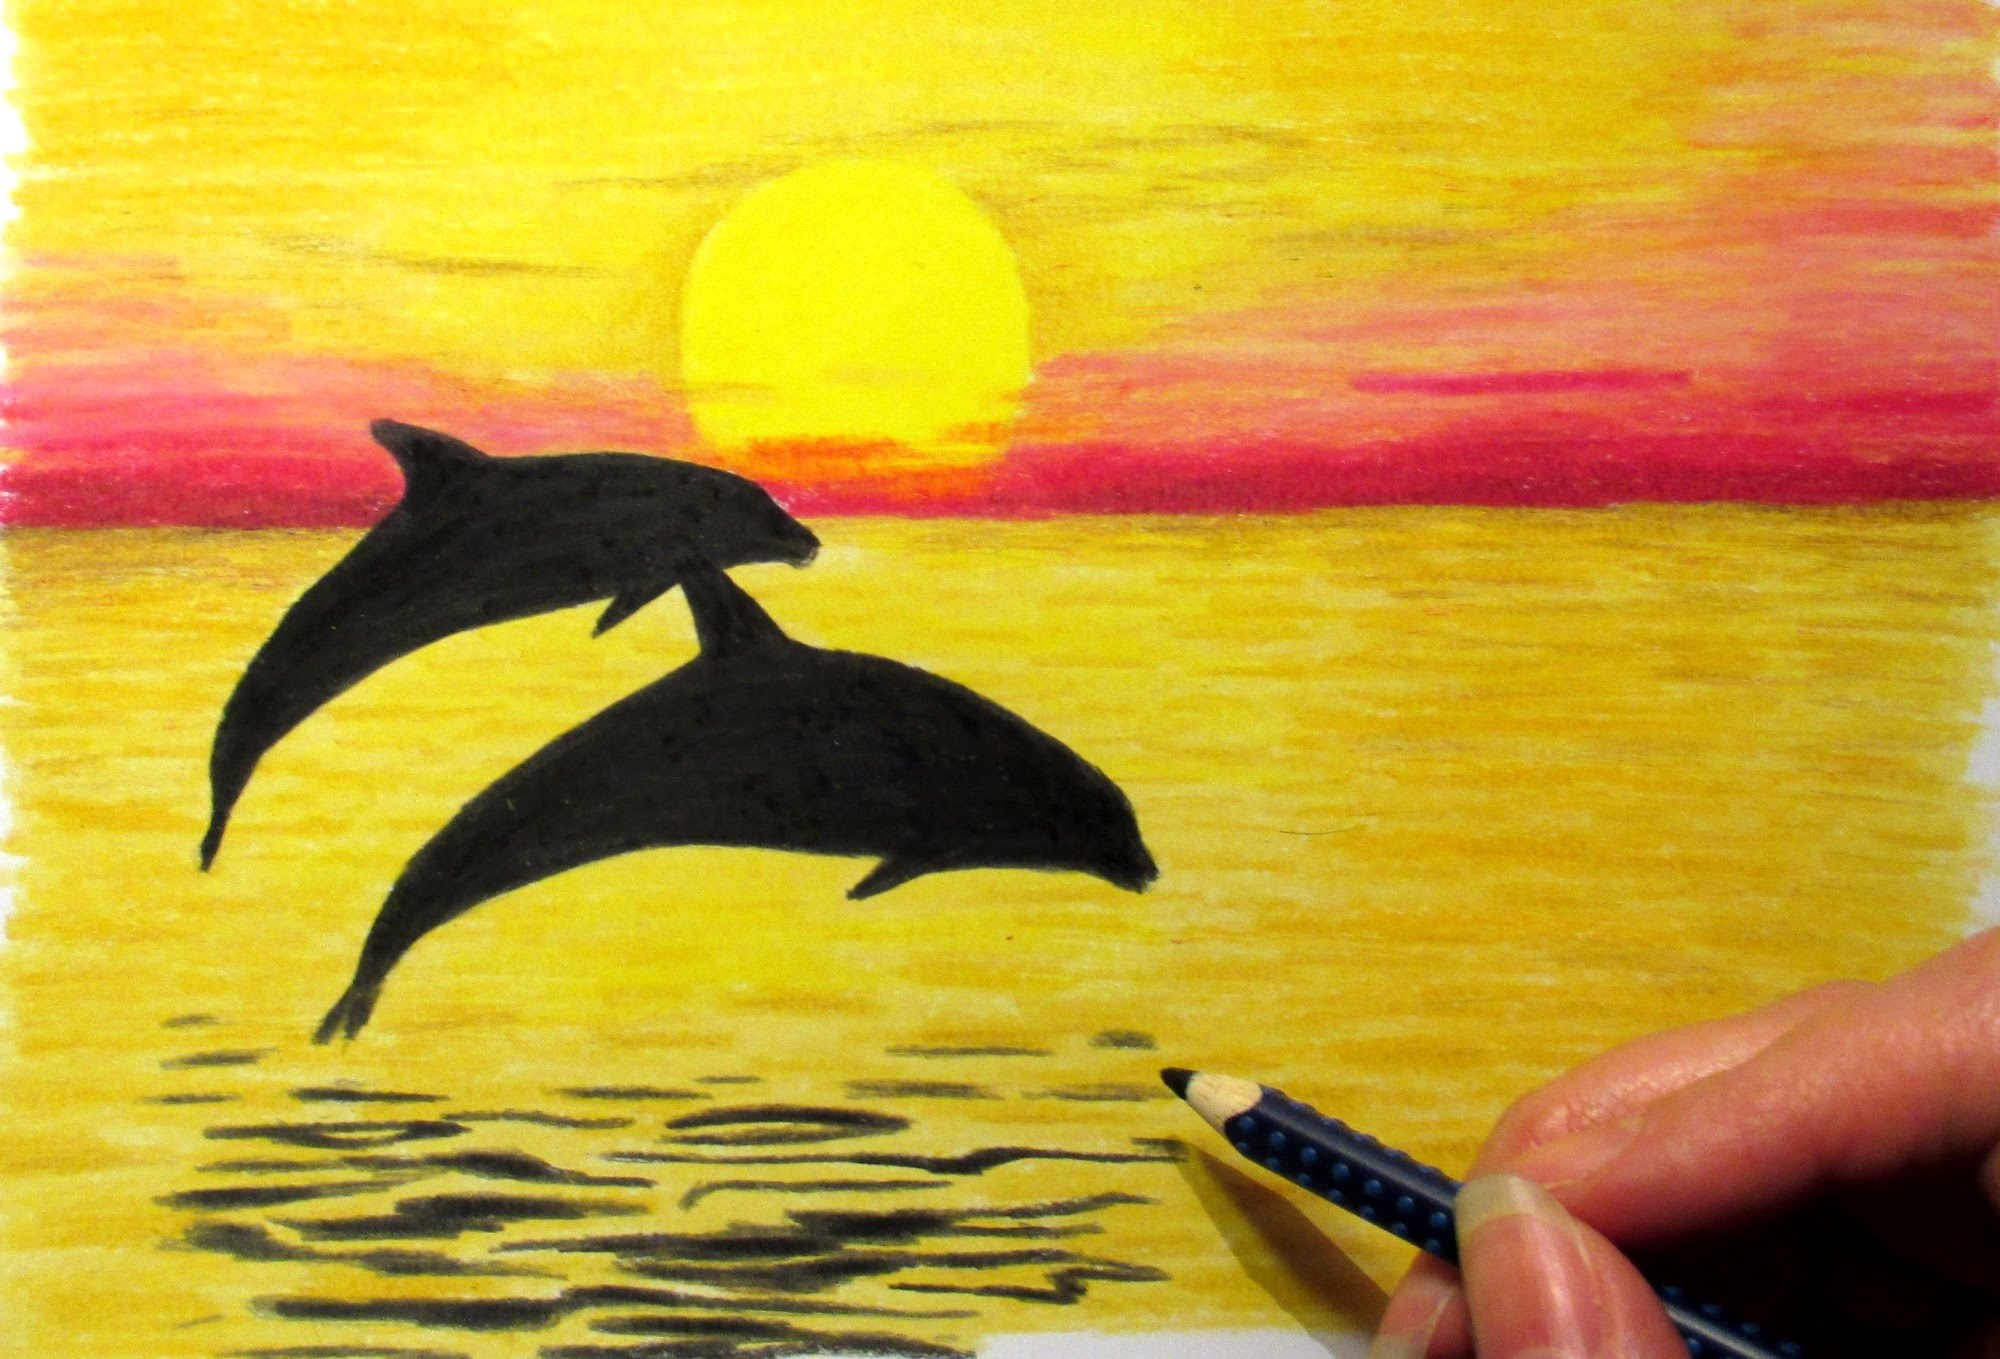 2000x1359 Drawing Of Natural Scenery Sunrise With Pencil Drawing Of Natural